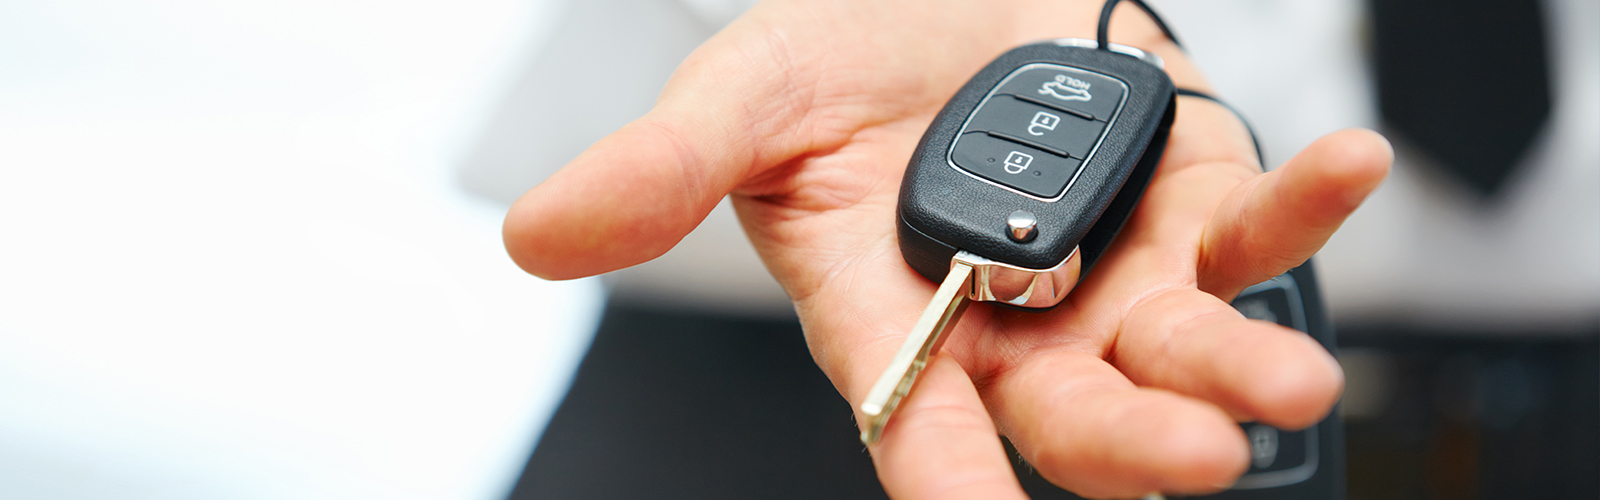 Person holding the keys to a new car in the palm of their hand.